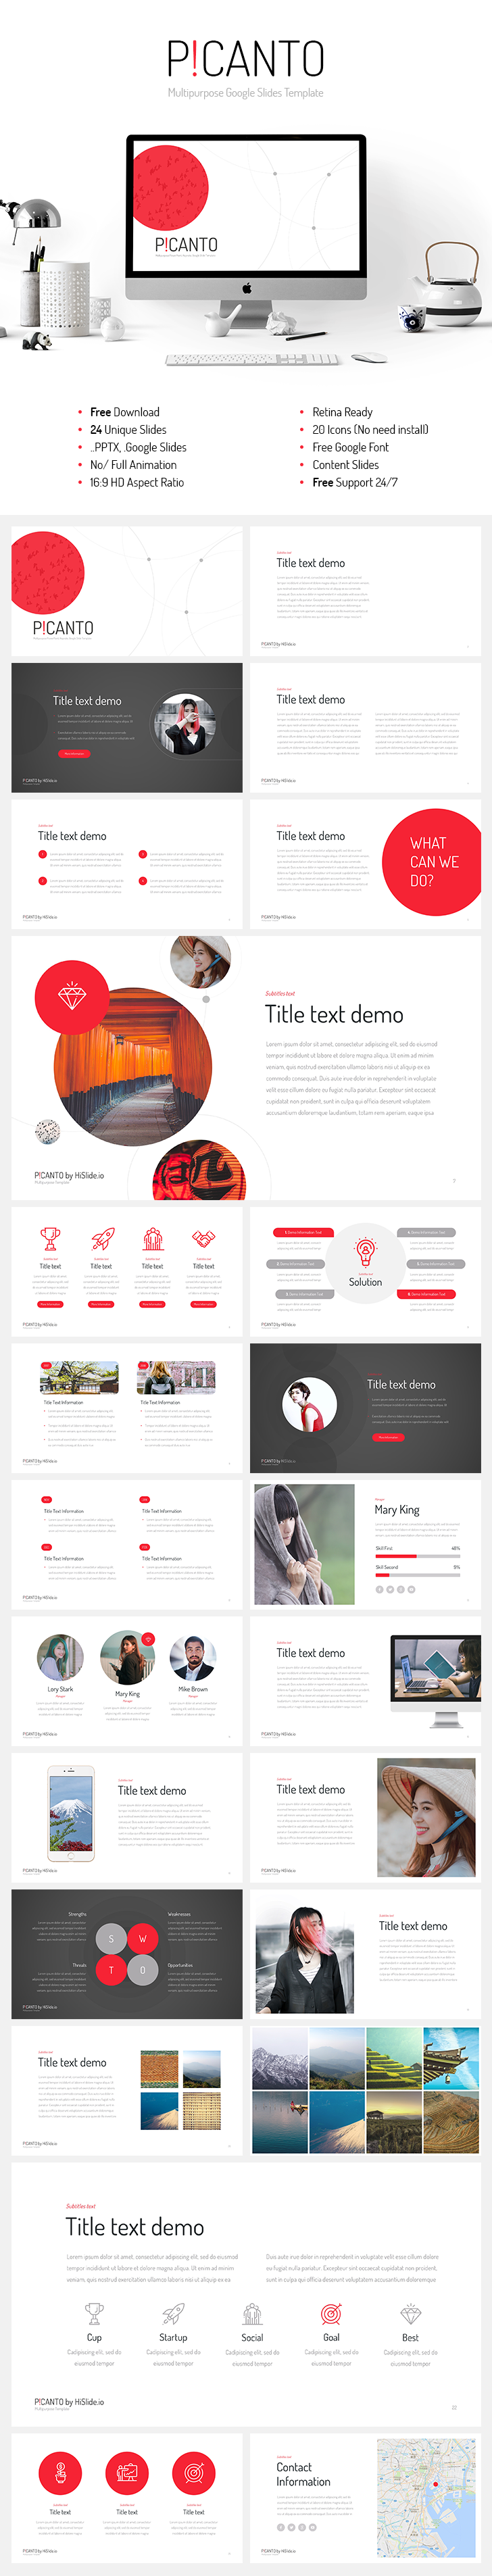 picanto google slides template free download free support 24 7